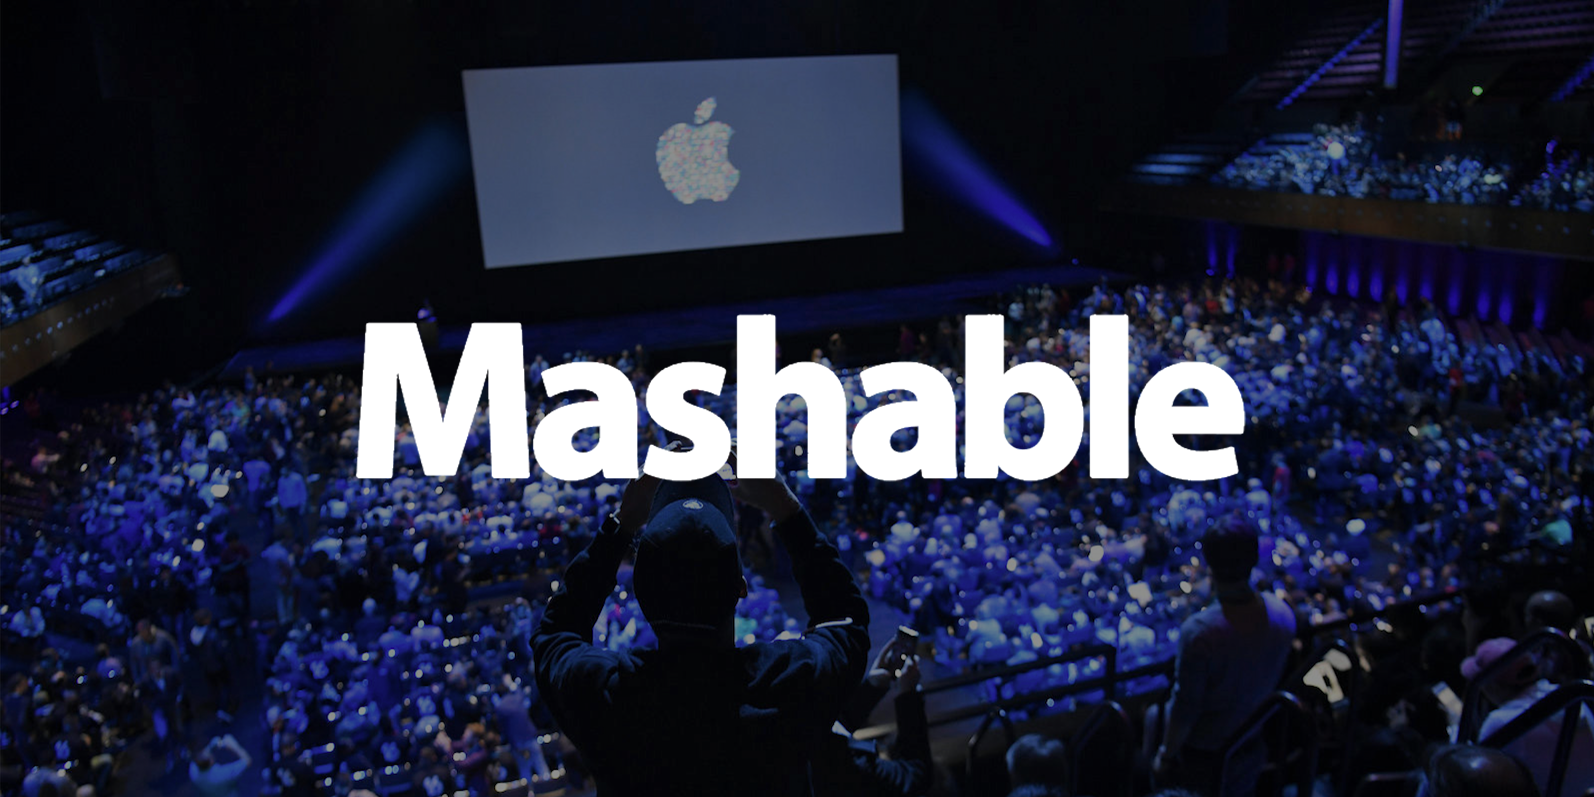 Mashable Creates Engaging Live Experiences For Their ...